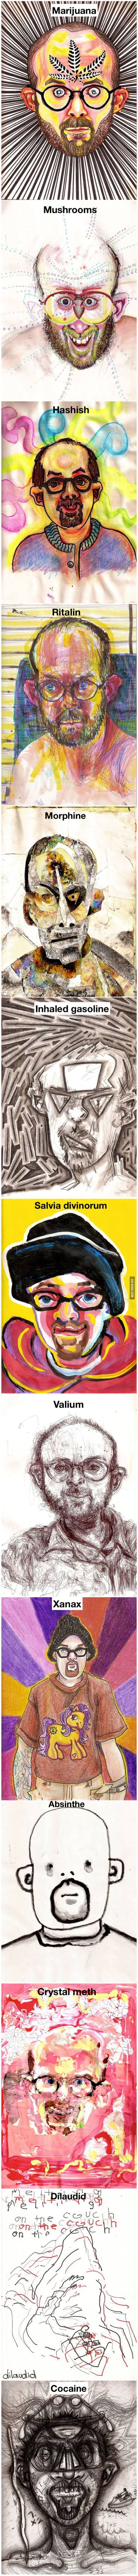 A man who painted himself under the effects of various drugs, I don't know why I find this so interesting, but I do.